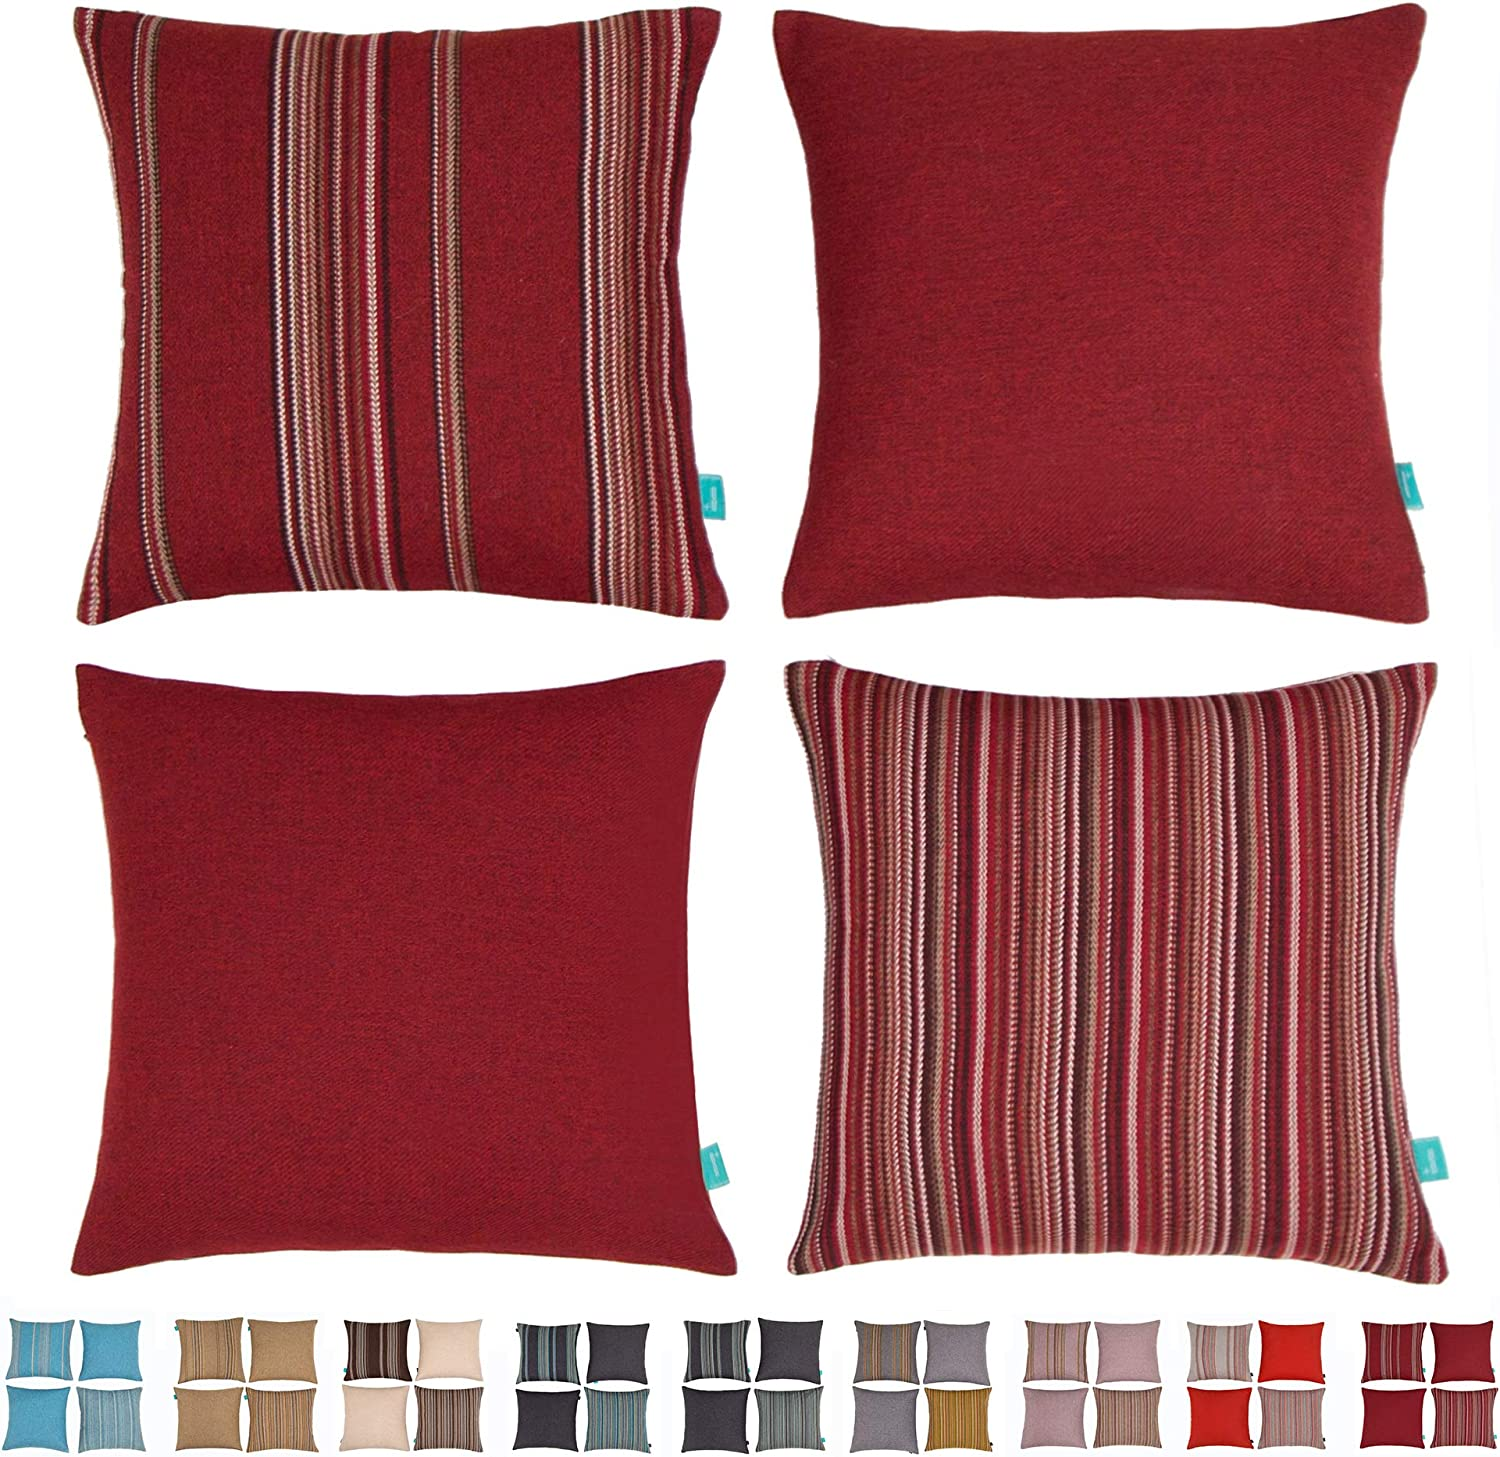 HPUK Maroon Striped Throw Pillow Covers Set of 4 Plaid Red Cushion Cases for Couch, Sofa, Bedroom, Living Room, Bedroom Holiday Decor, 18